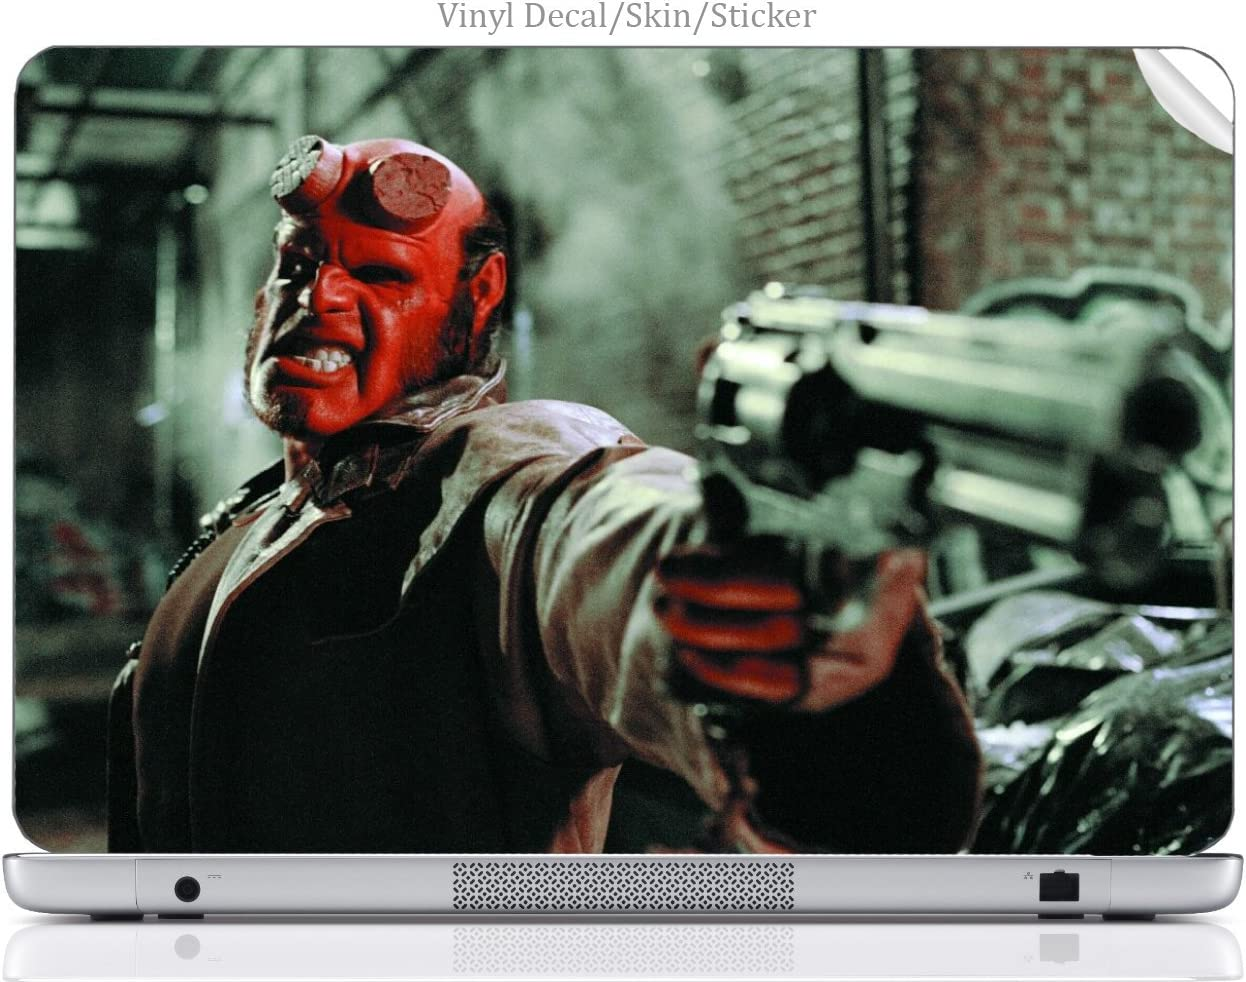 Laptop VINYL DECAL Sticker Skin Print Comic Book Hero fits MacBook Pro 13 (2009 / 2010)